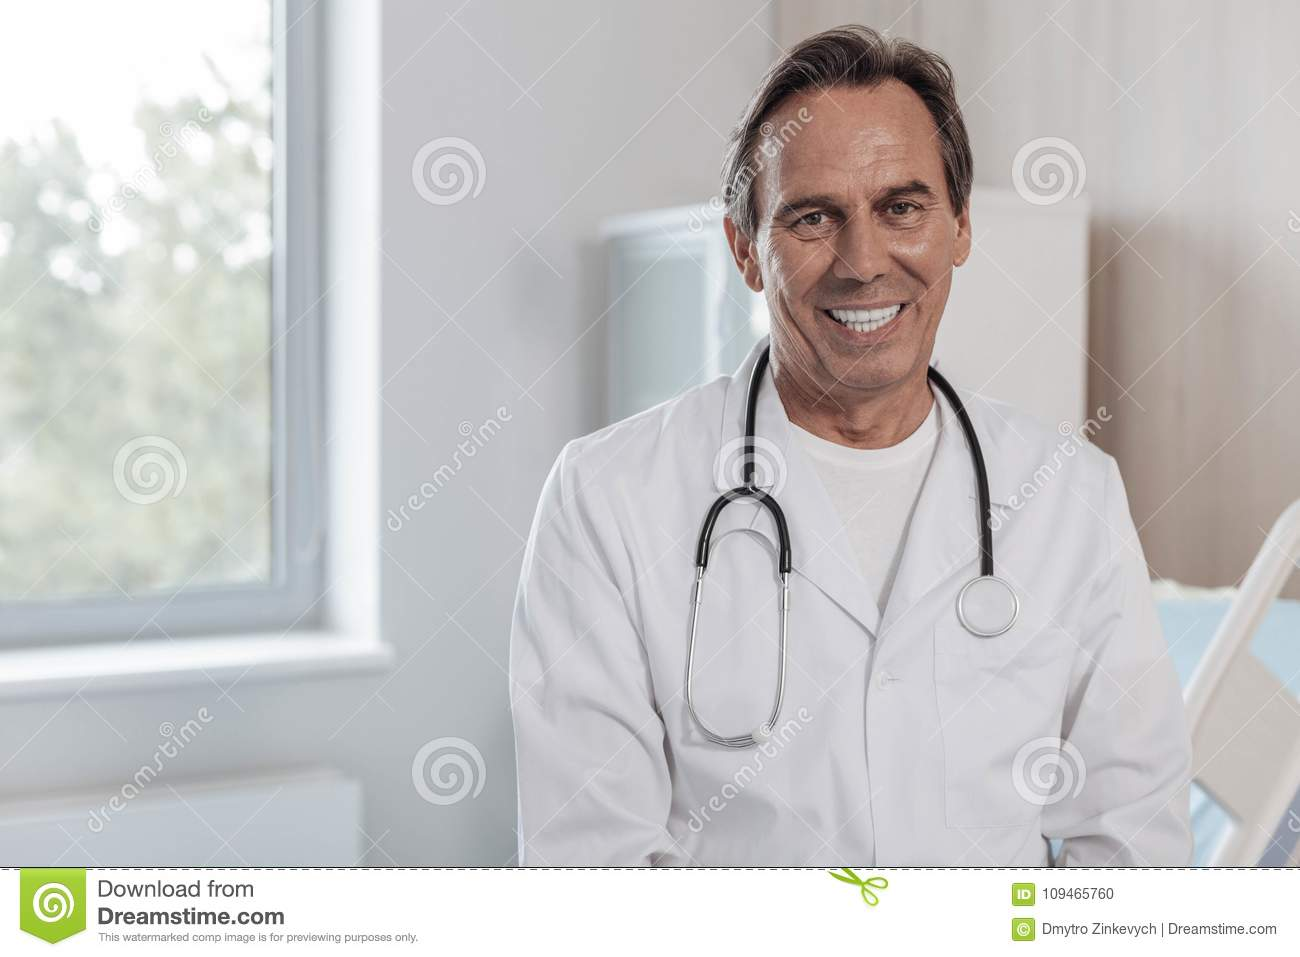 Friendly medical worker grinning broadly into camera